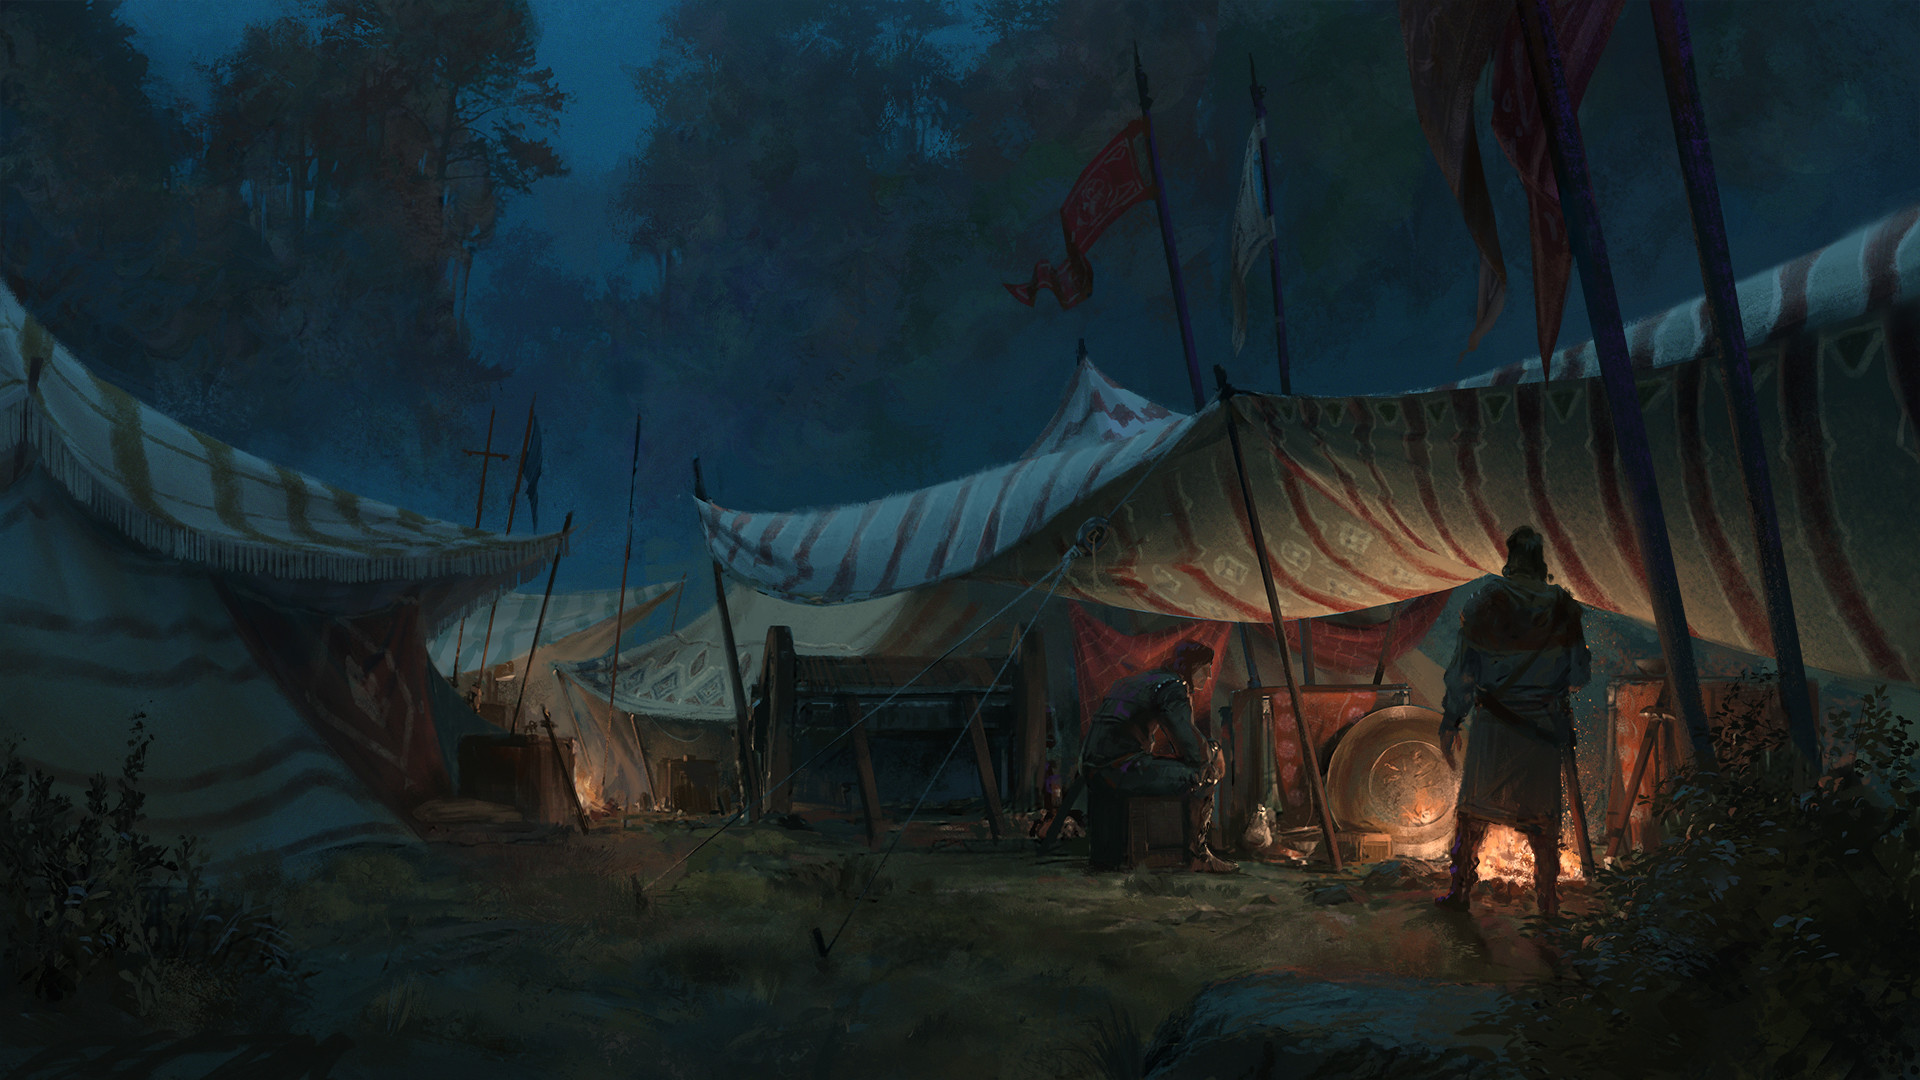 Klaus pillon camp night final